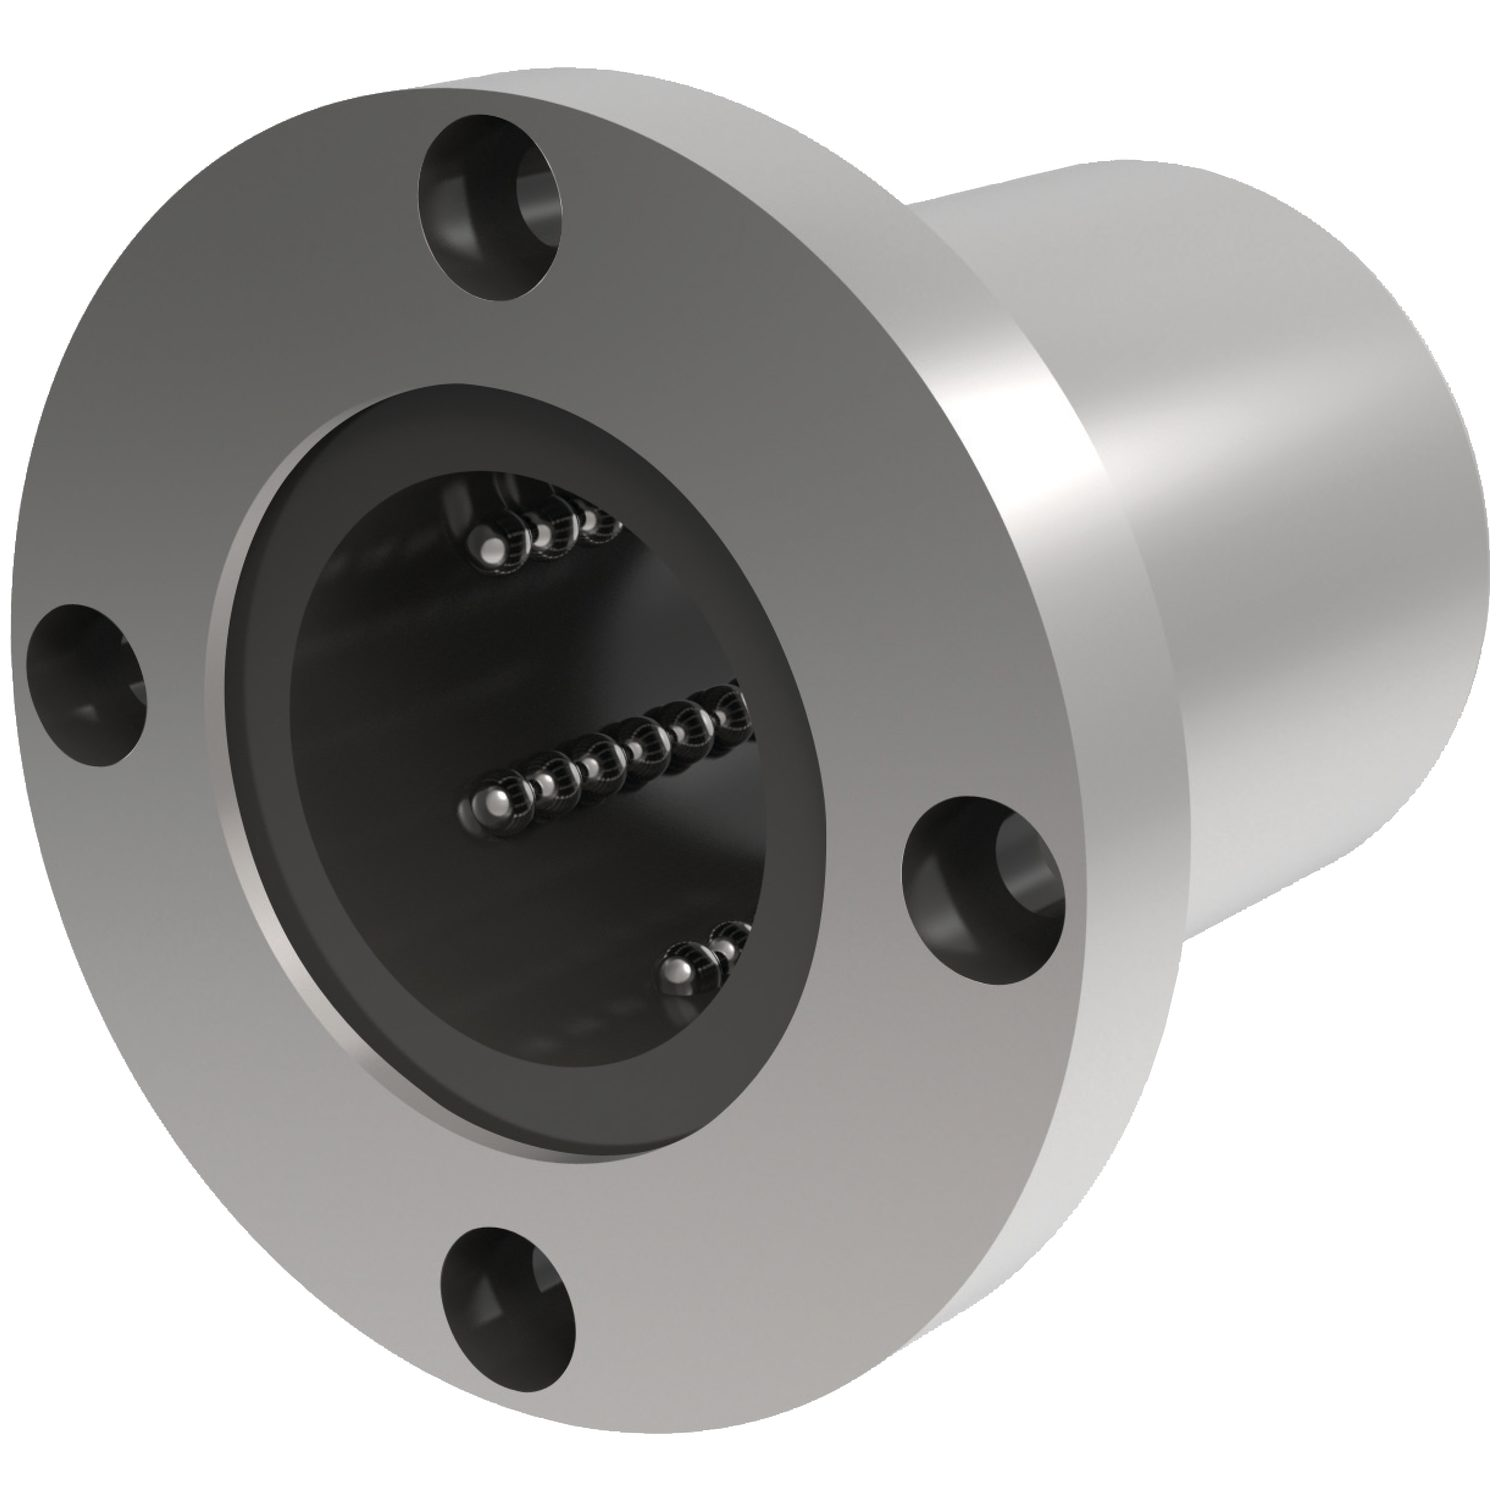 Product L1718, Flanged Linear Ball Bushings circular flange /